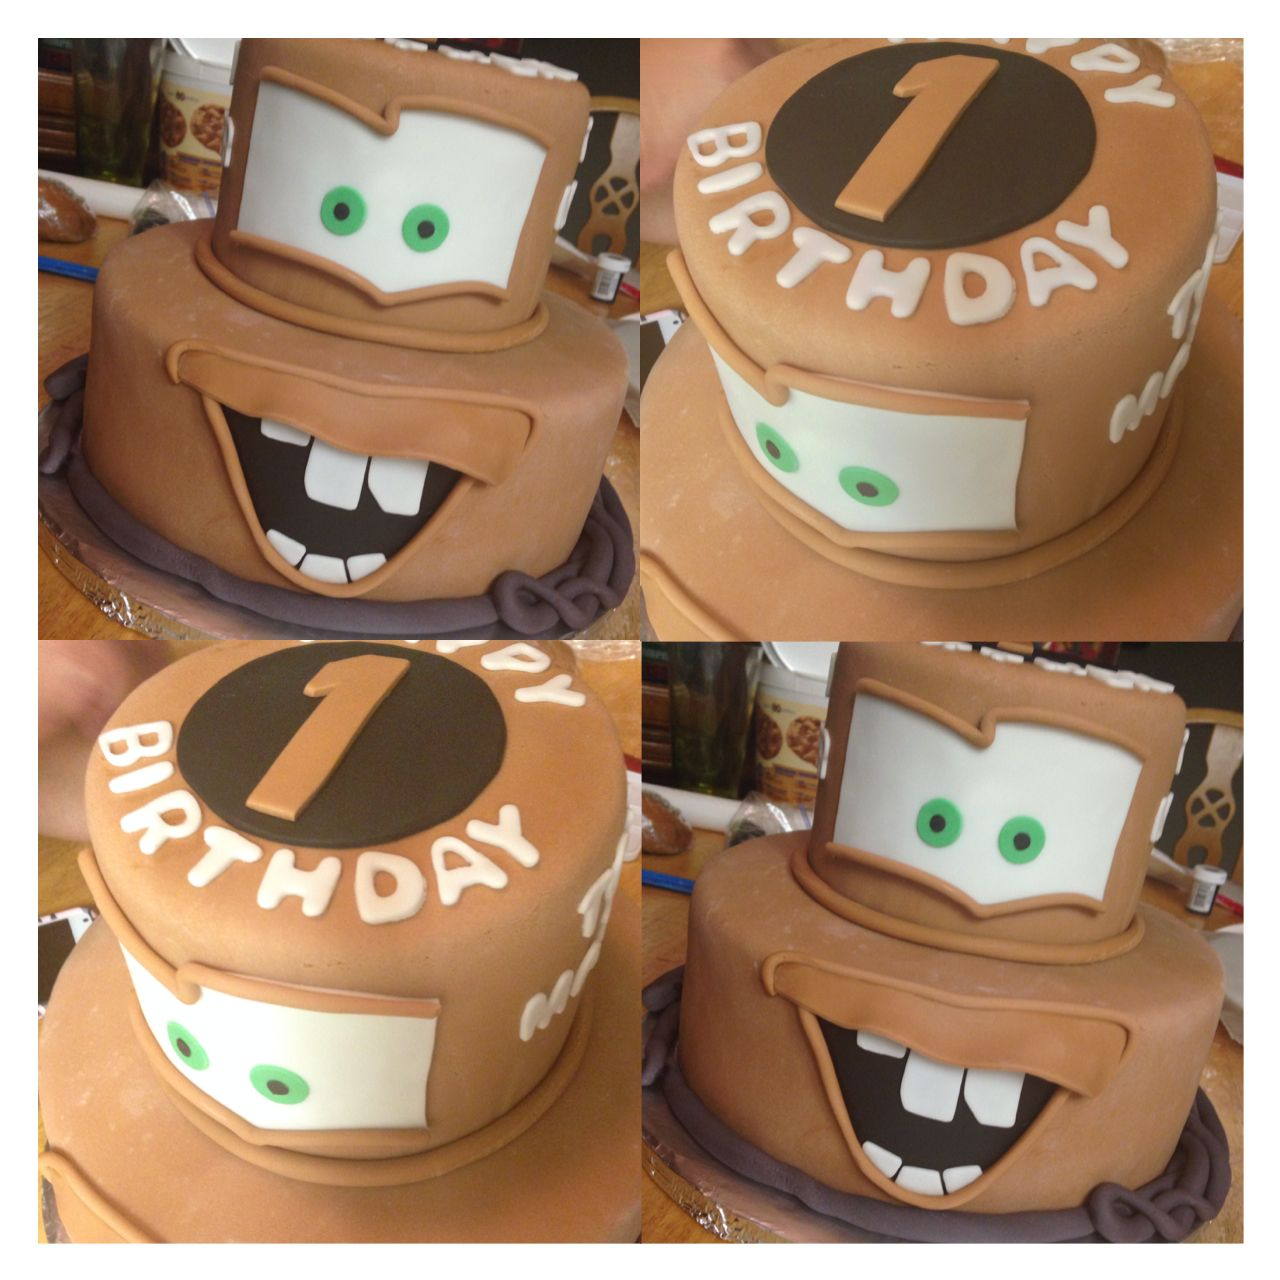 Sensational Tow Mater Disney Cars Cakes Cake Professional Ig Krystiem With Funny Birthday Cards Online Alyptdamsfinfo